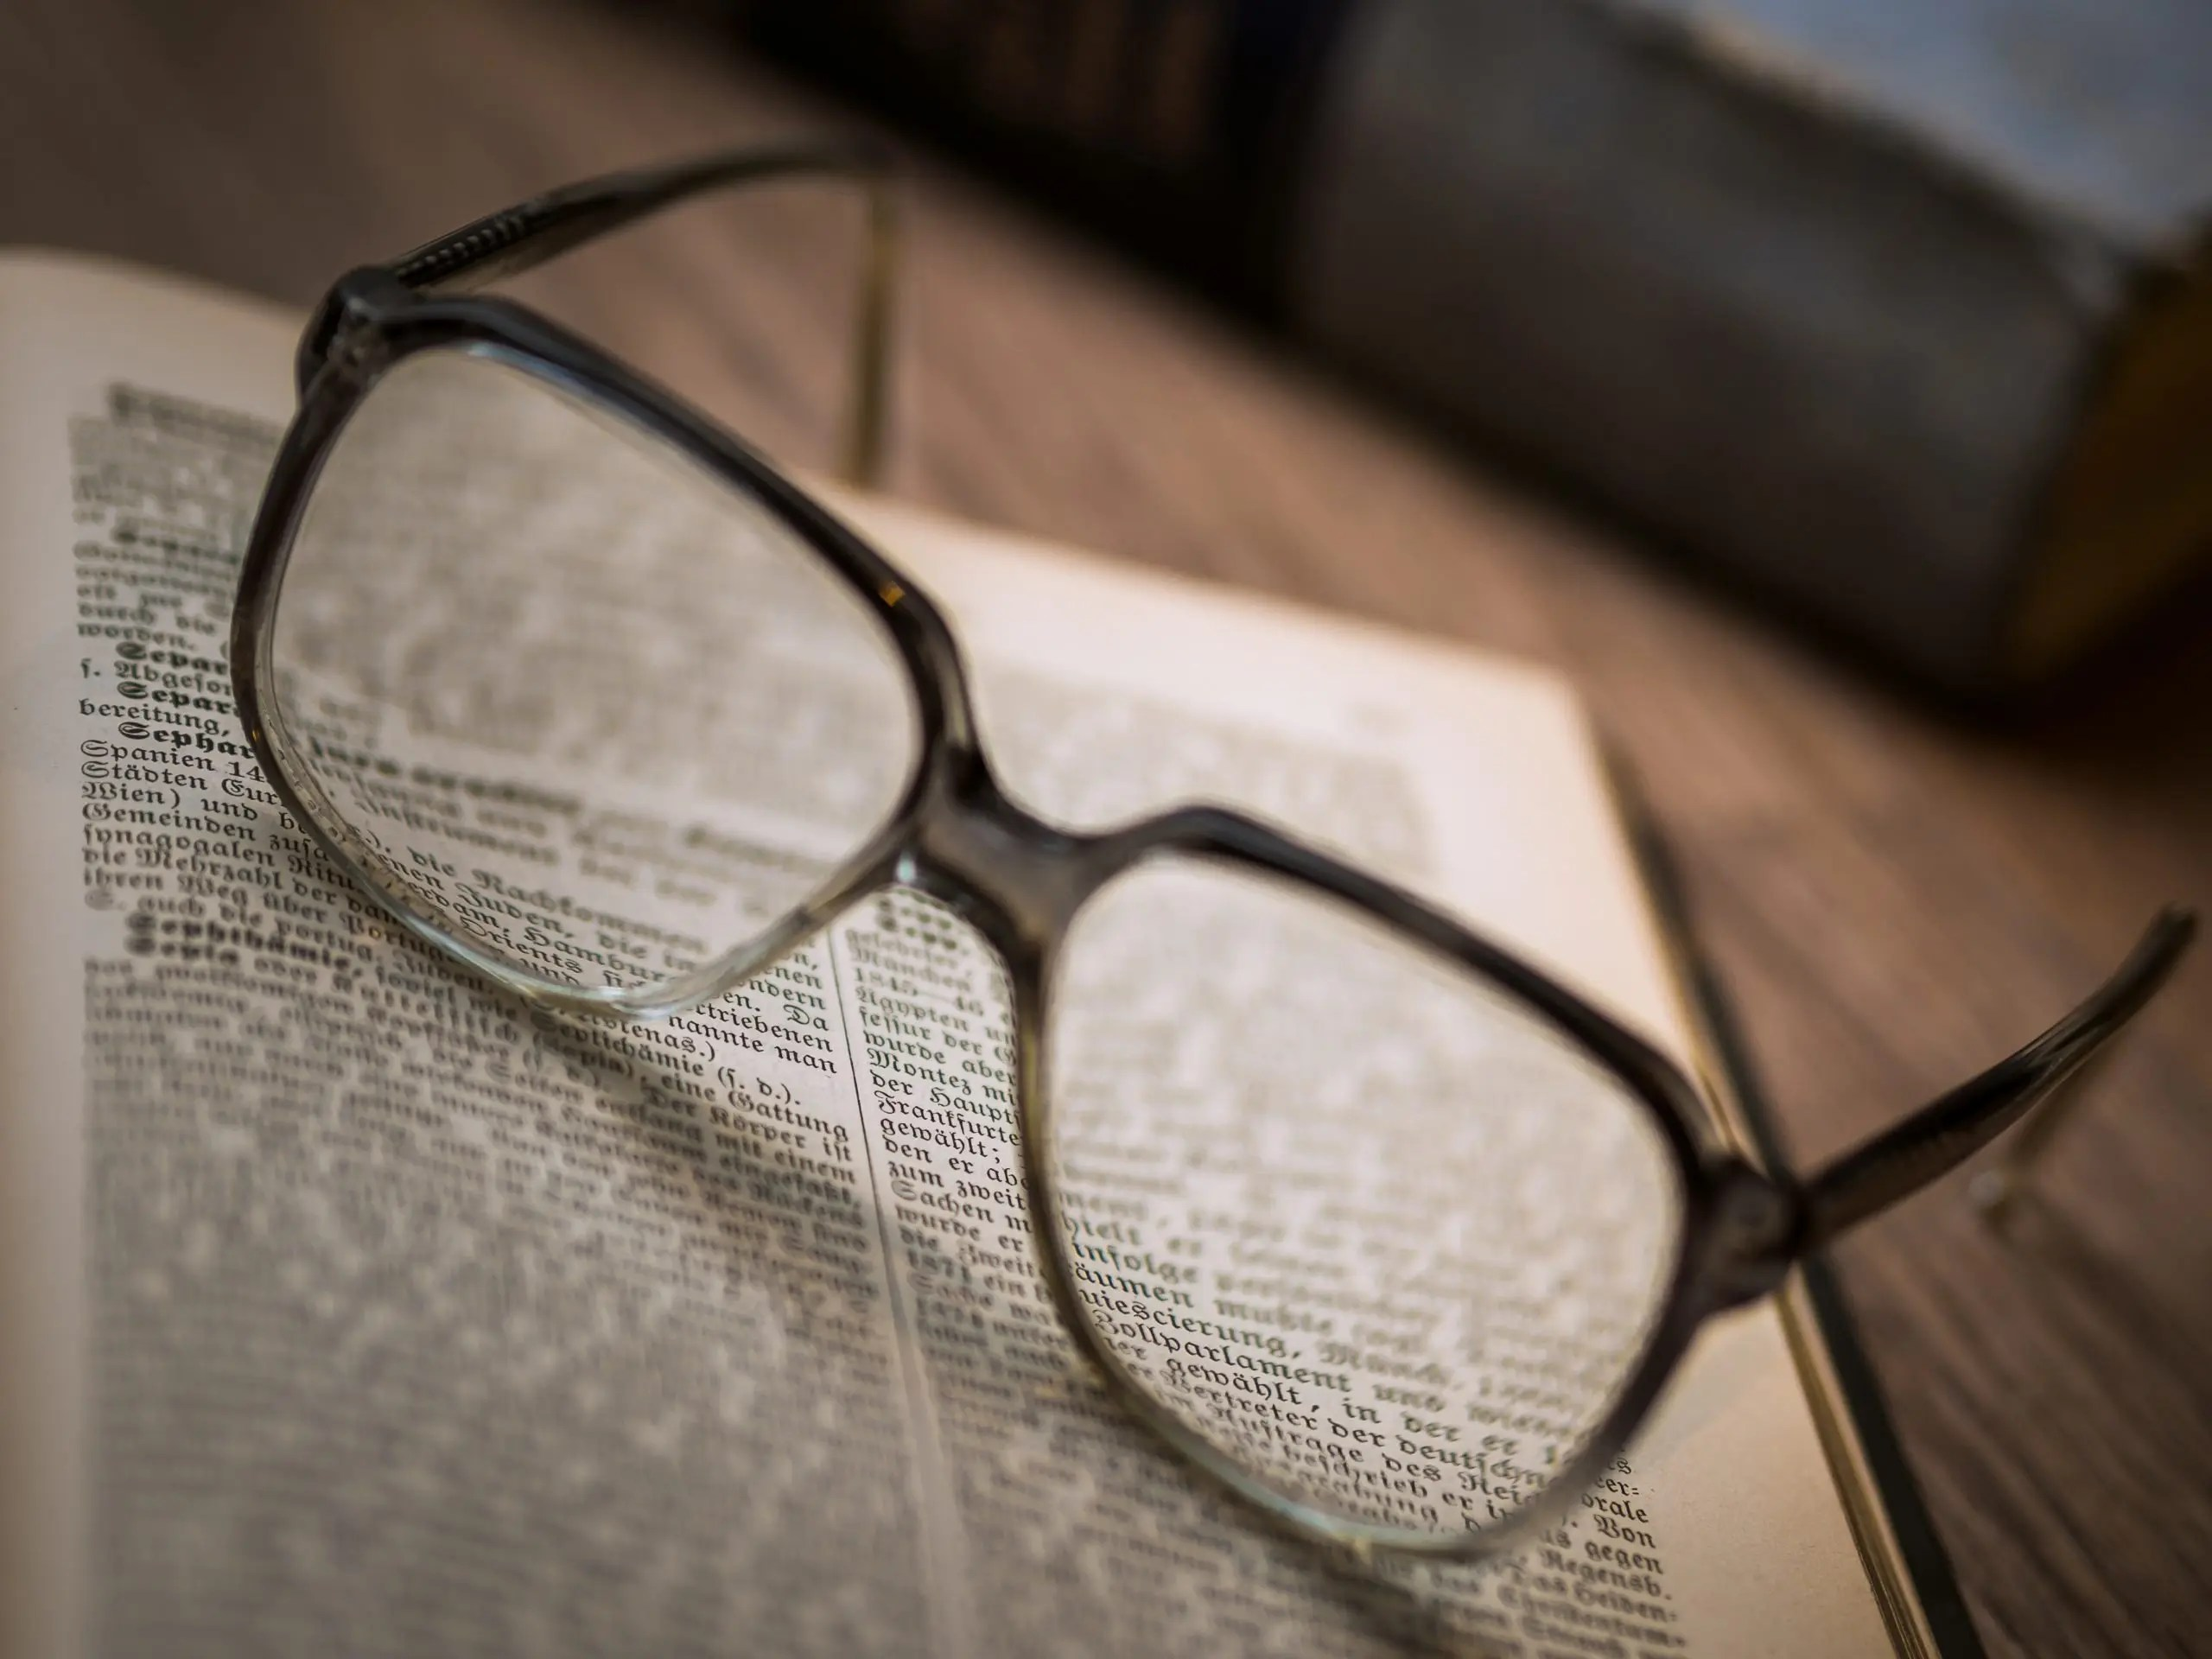 Image of eyeglasses resting on an open book